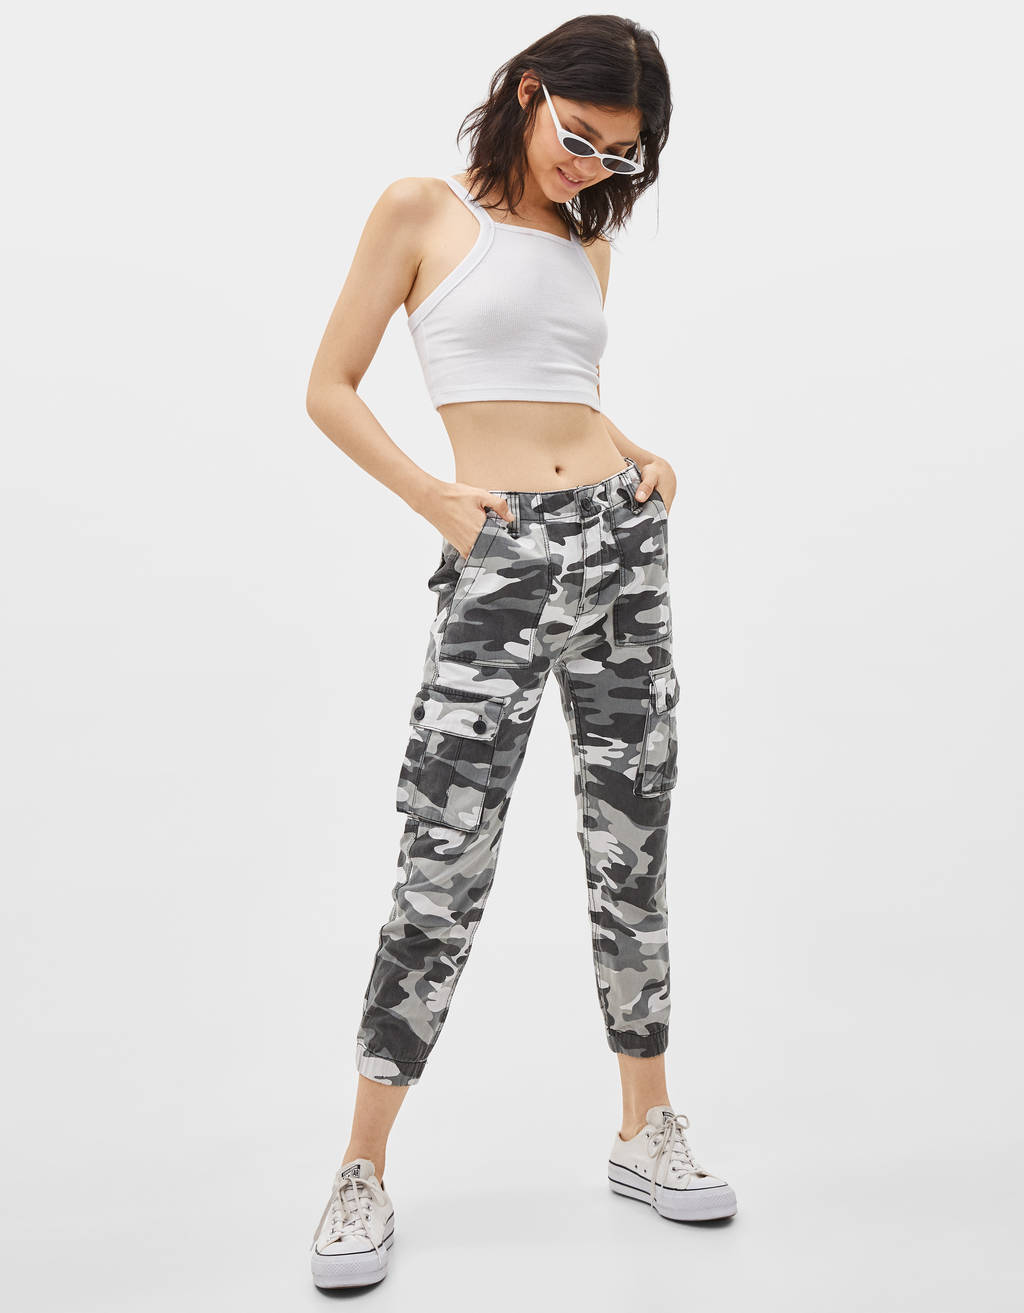 Leger Joggingbroek.Broeken Collectie Dames Bershka Netherlands